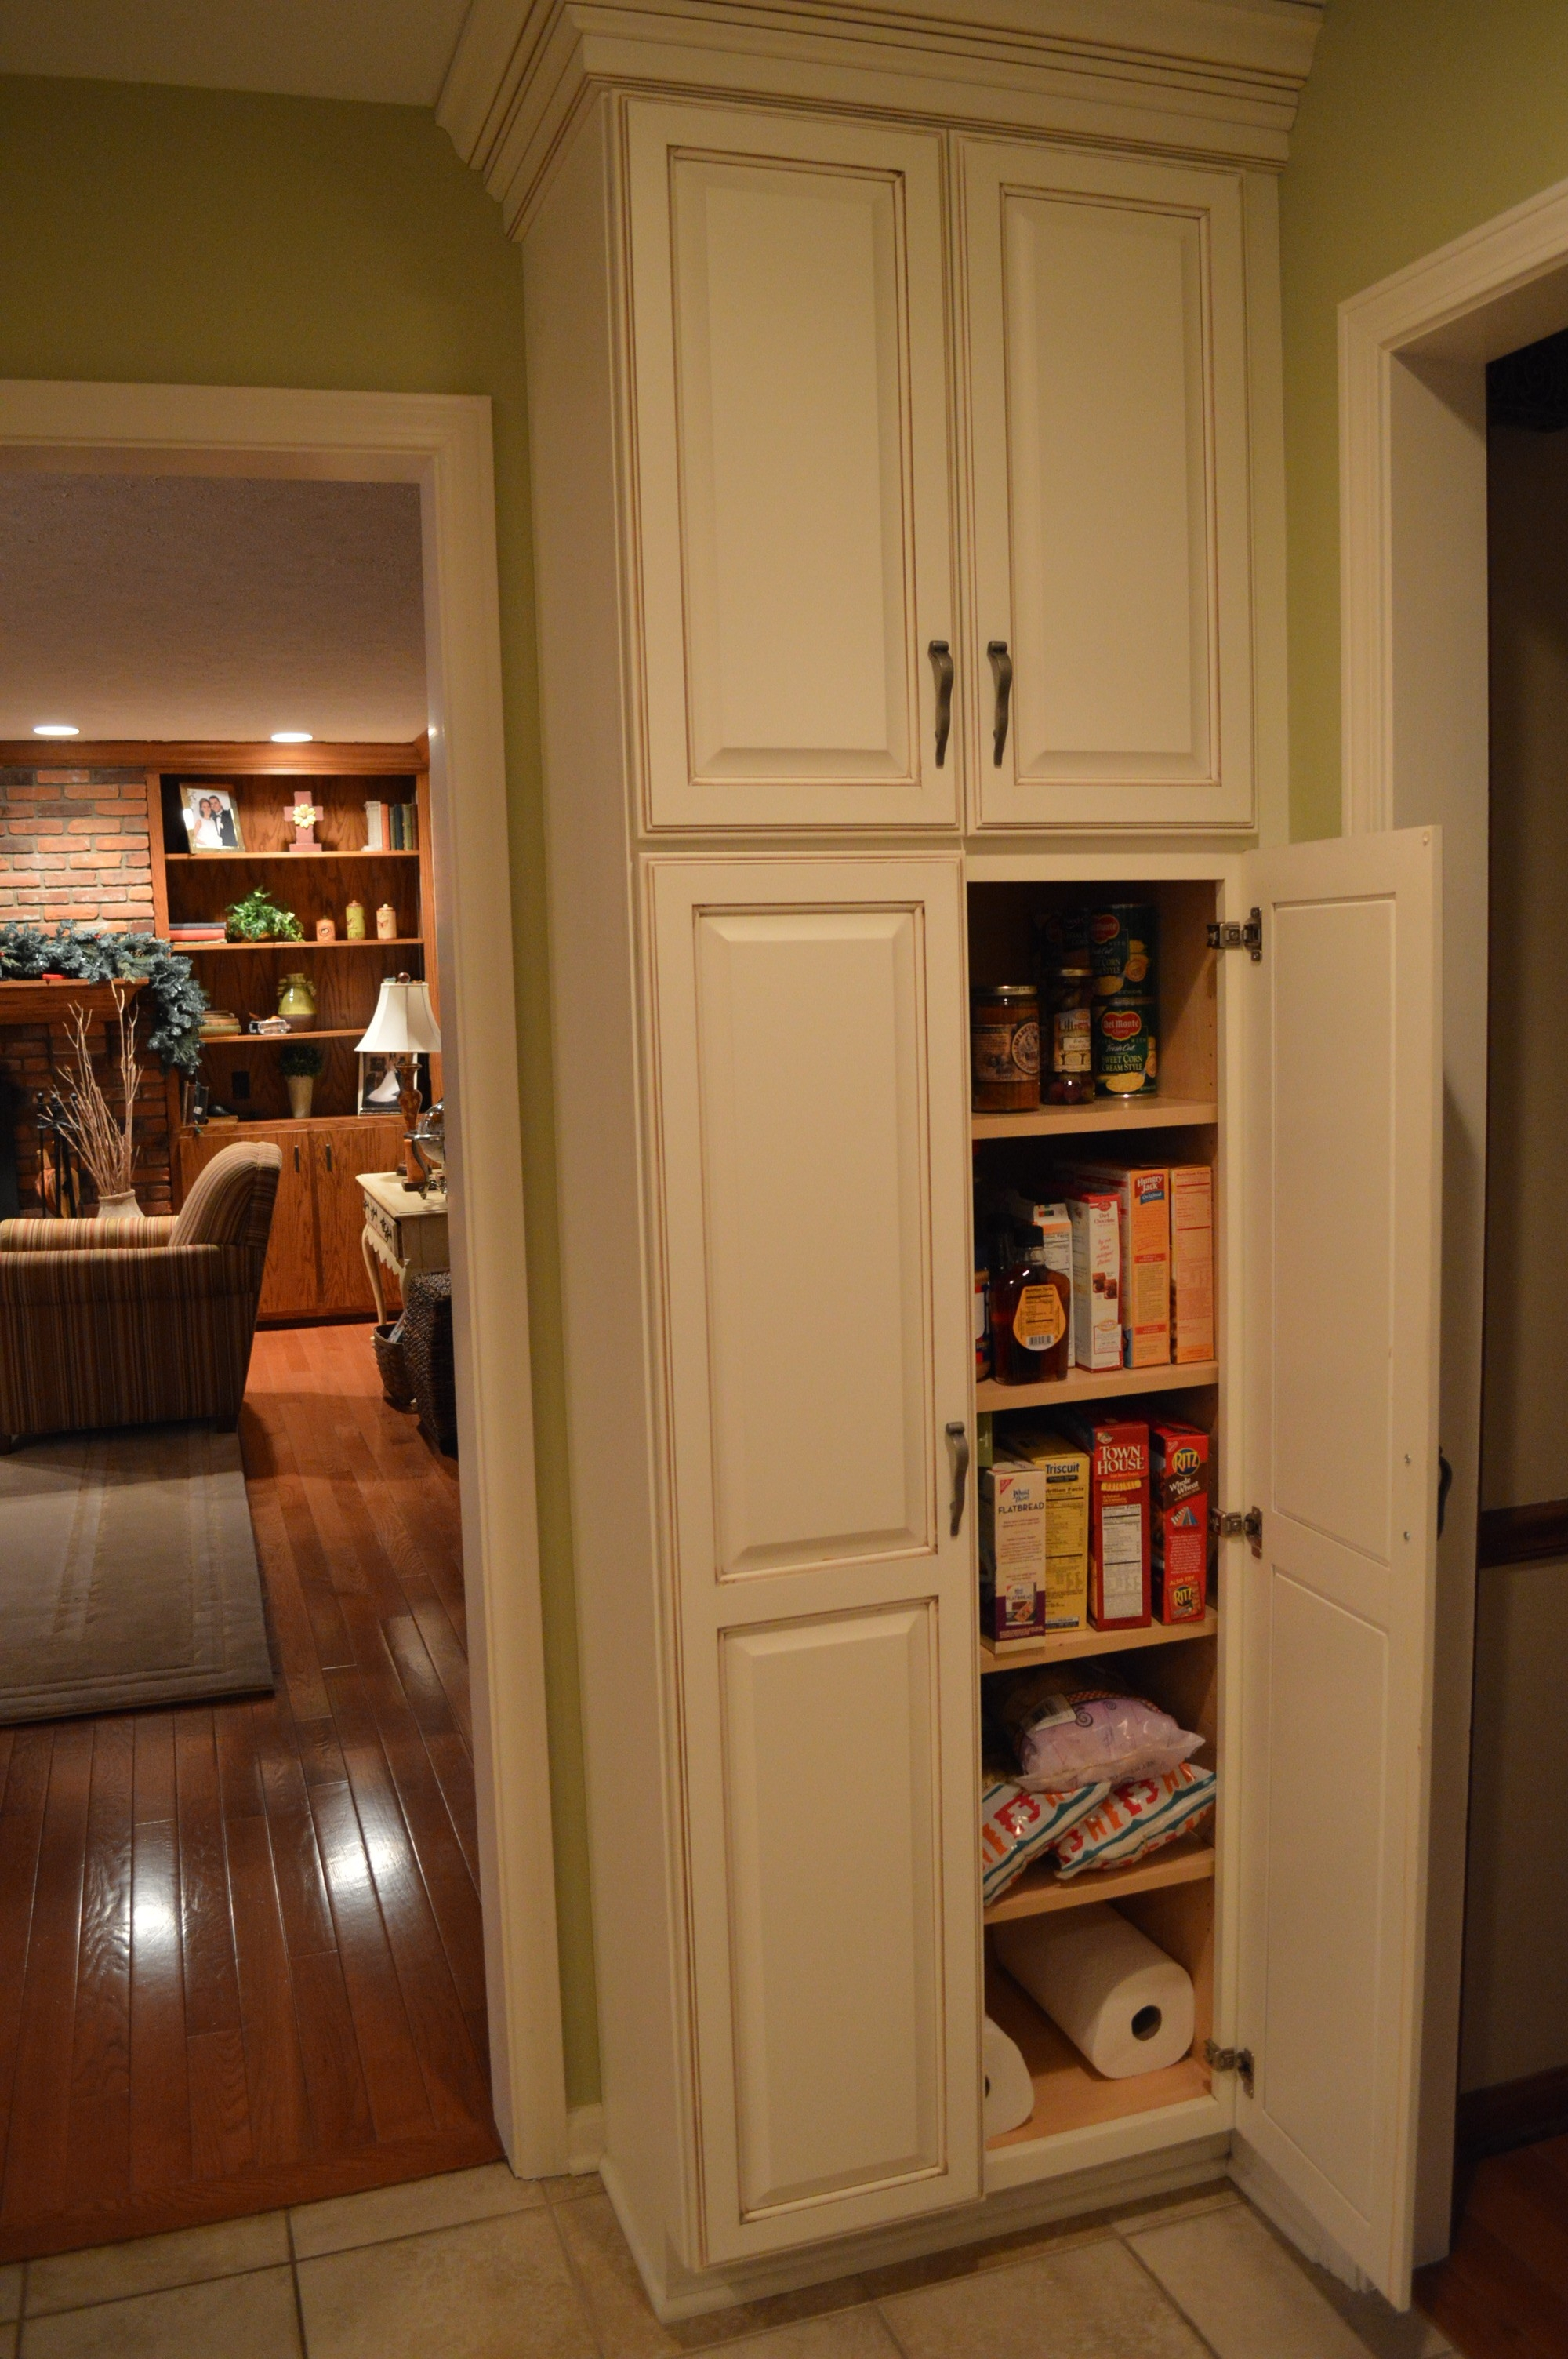 Free Standing Kitchen Pantry Oyzwgw Kitchens Pinterest 4004 Regarding Free Standing Kitchen Larder Cupboards (View 21 of 25)